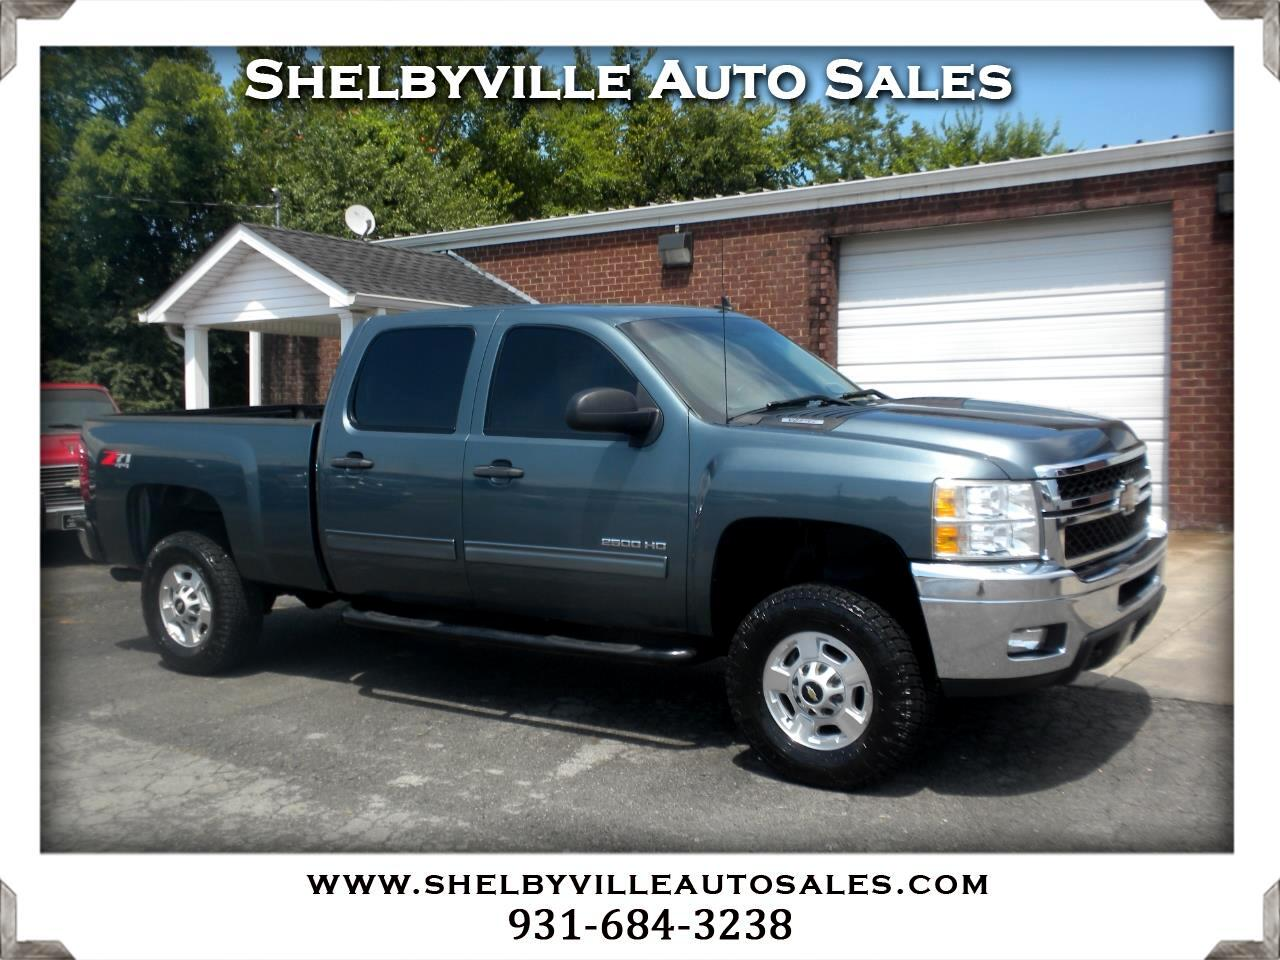 Used Cars for Sale Shelbyville TN 37160 Shelbyville Auto Sales